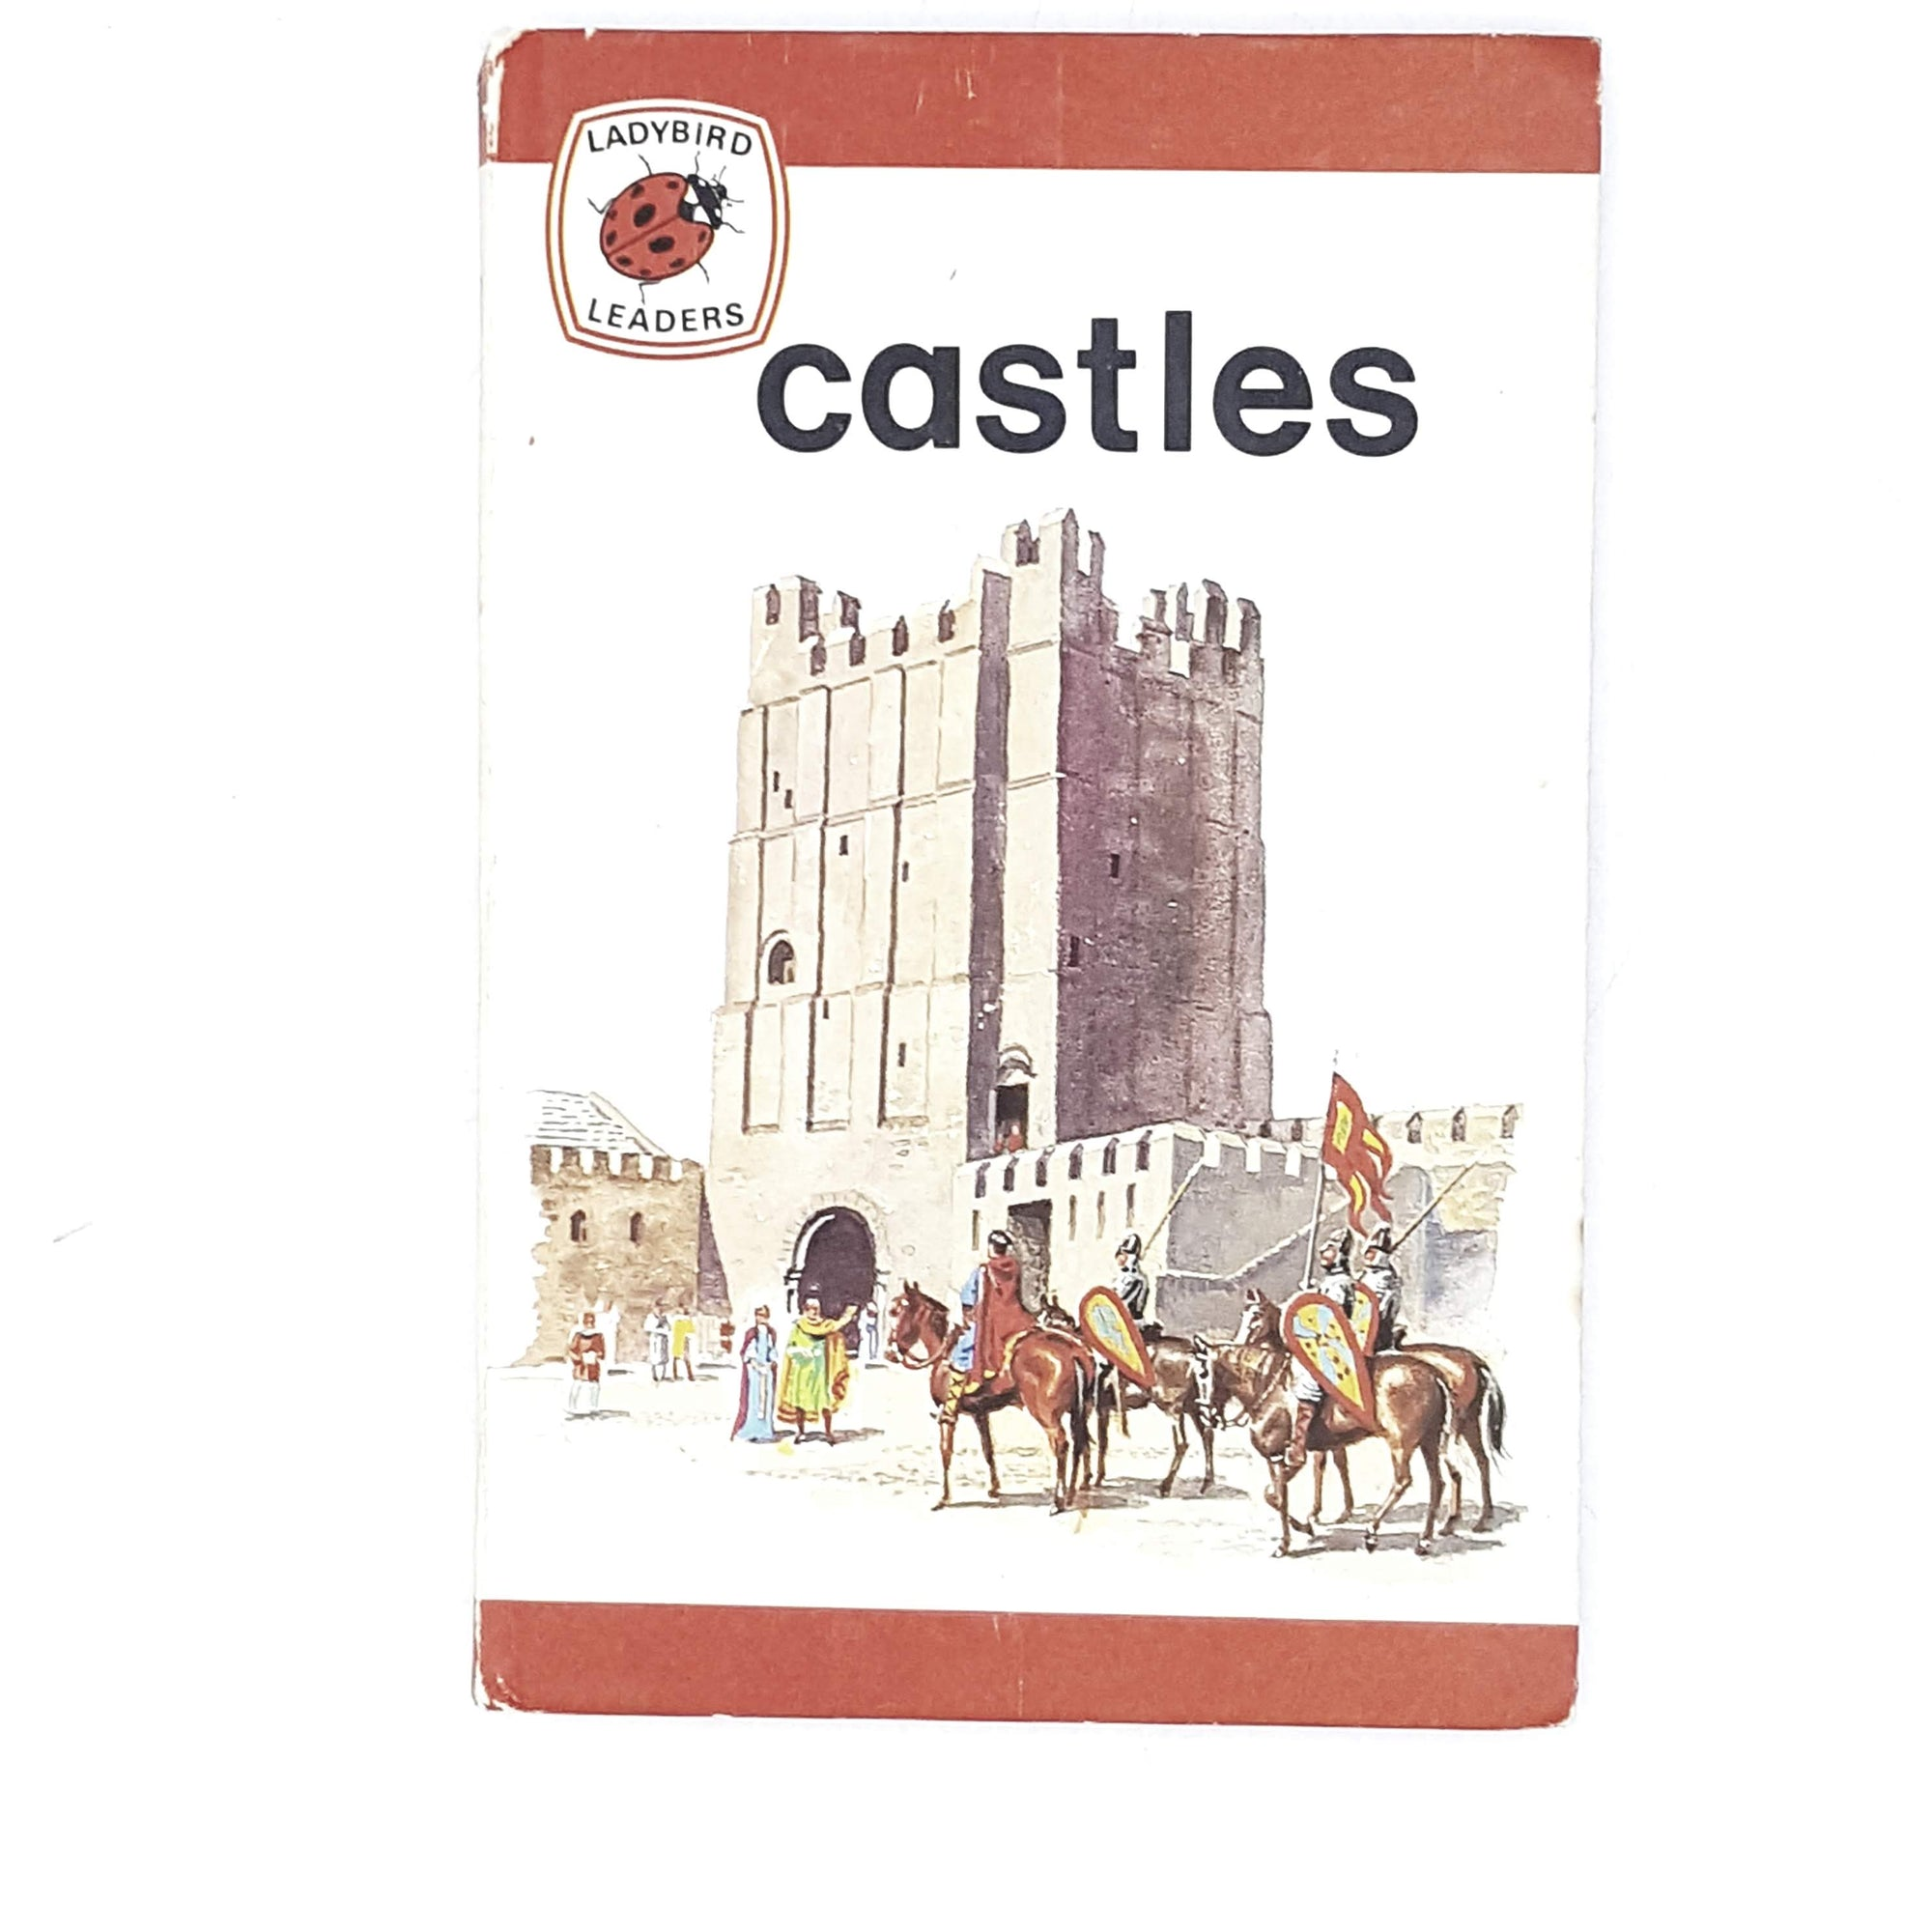 Ladybird Leaders: Castles 1974